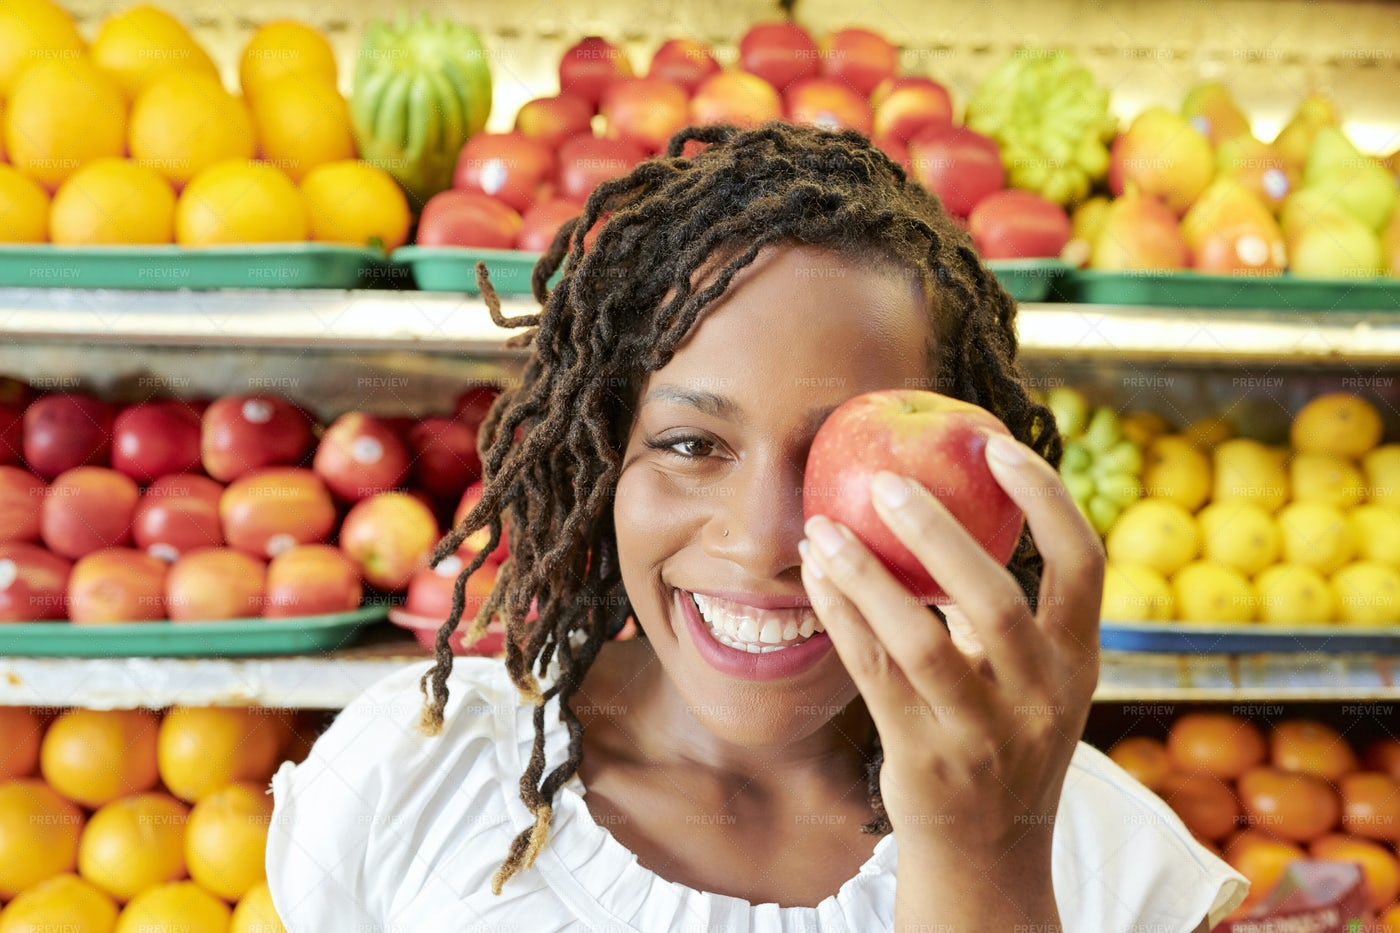 Young Woman With Apple In Store: Stock Photos